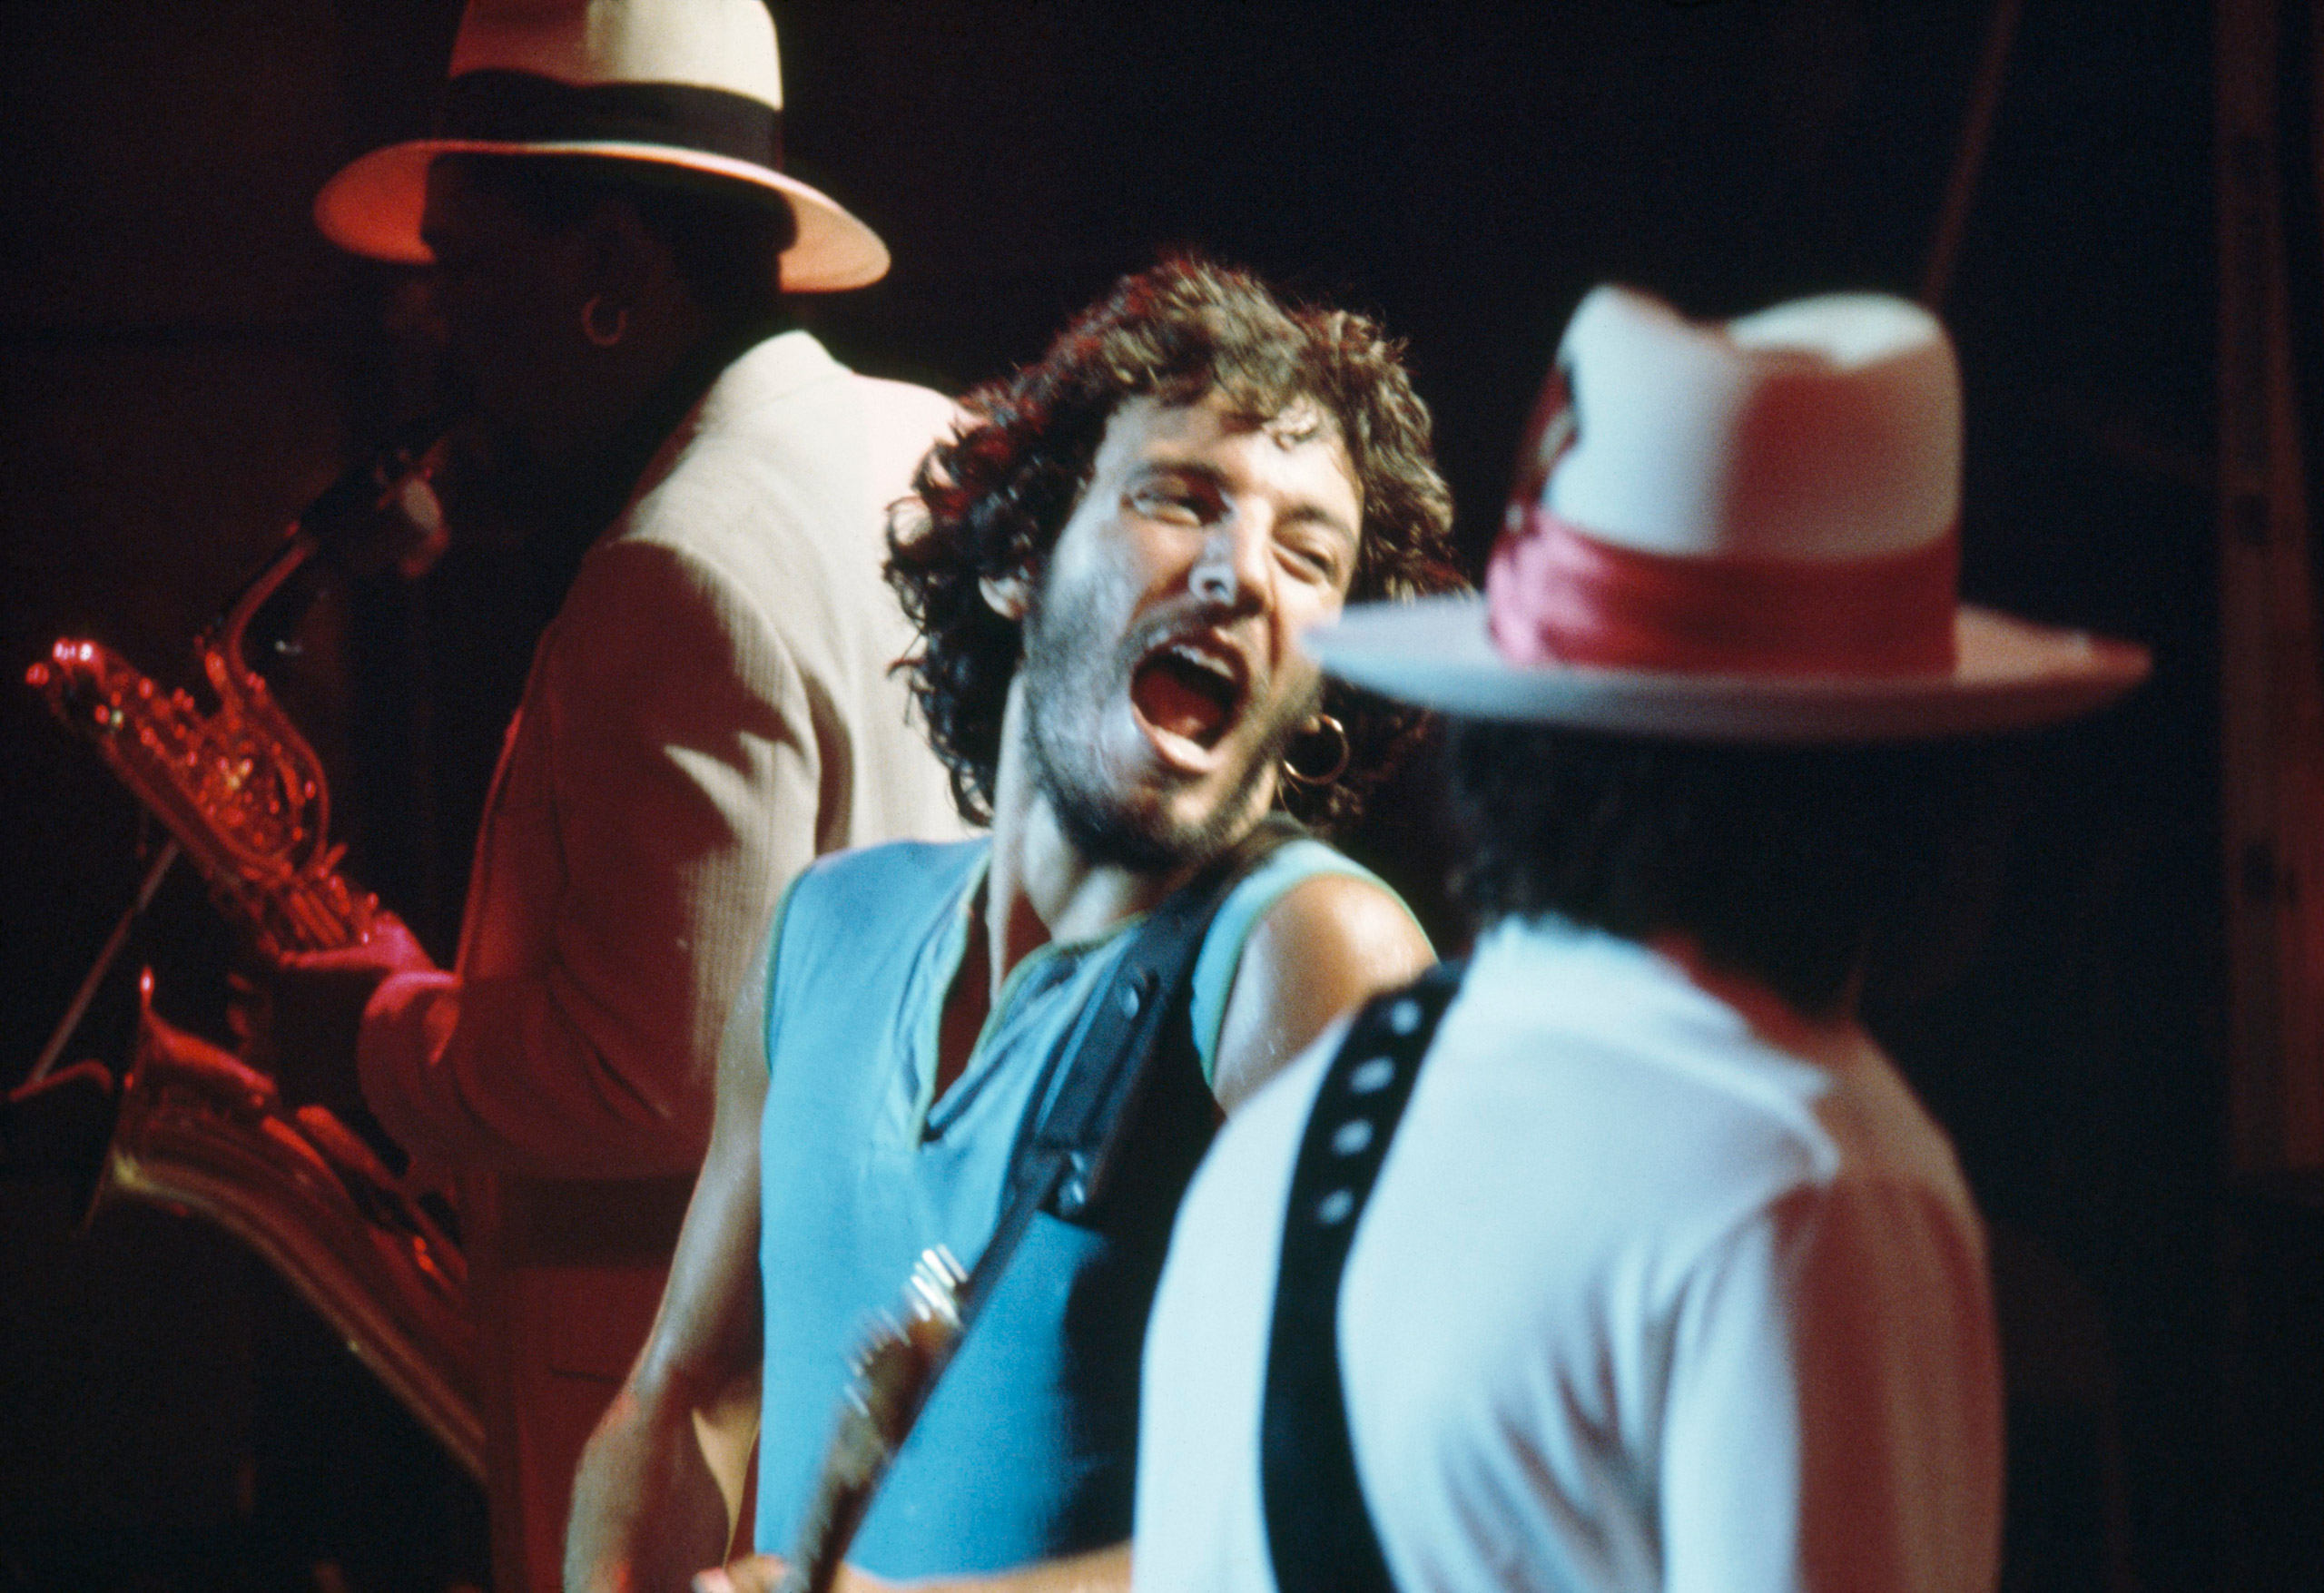 Bruce Springsteen and the E Street Band performing at the Bottom Line in New York City, in their biggest performance of their career up to that point.